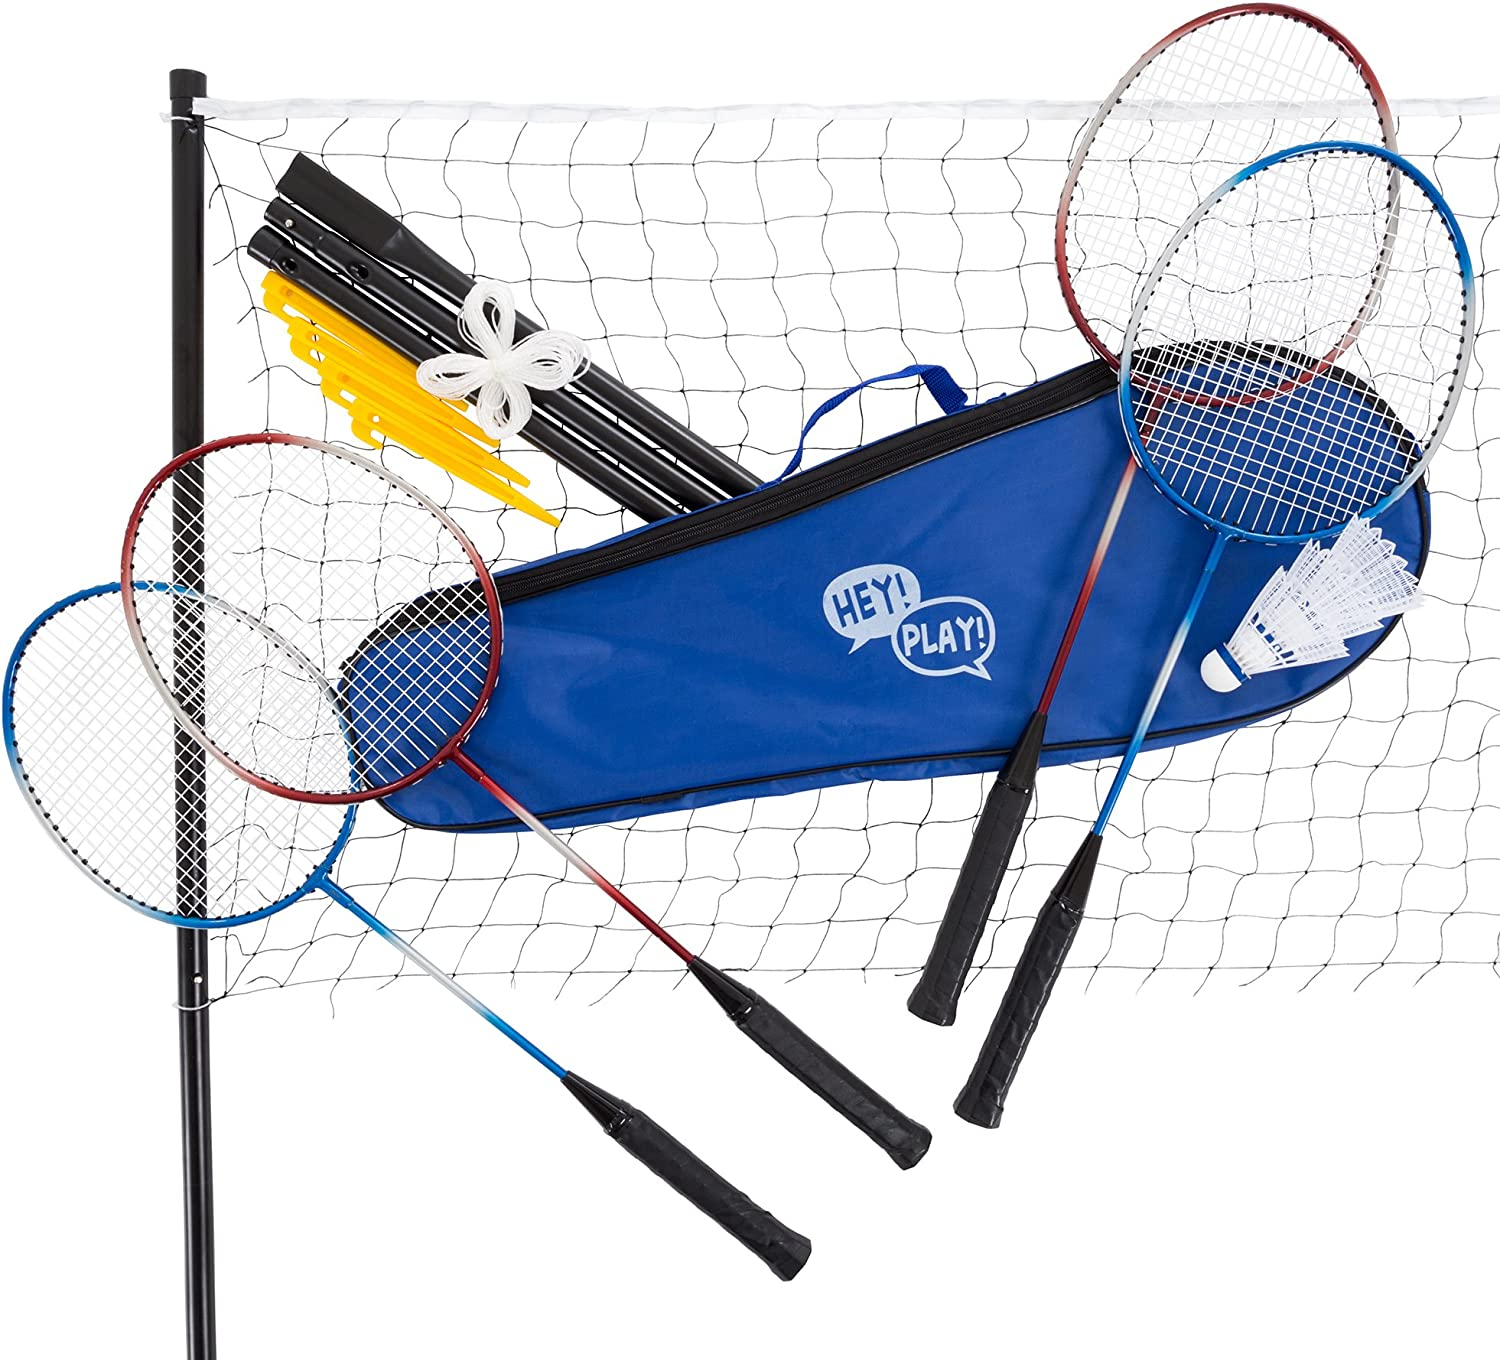 In a popularity Hey Popular shop is the lowest price challenge Play Badminton Set Complete Outdoor Yard Racqu Game 4 with